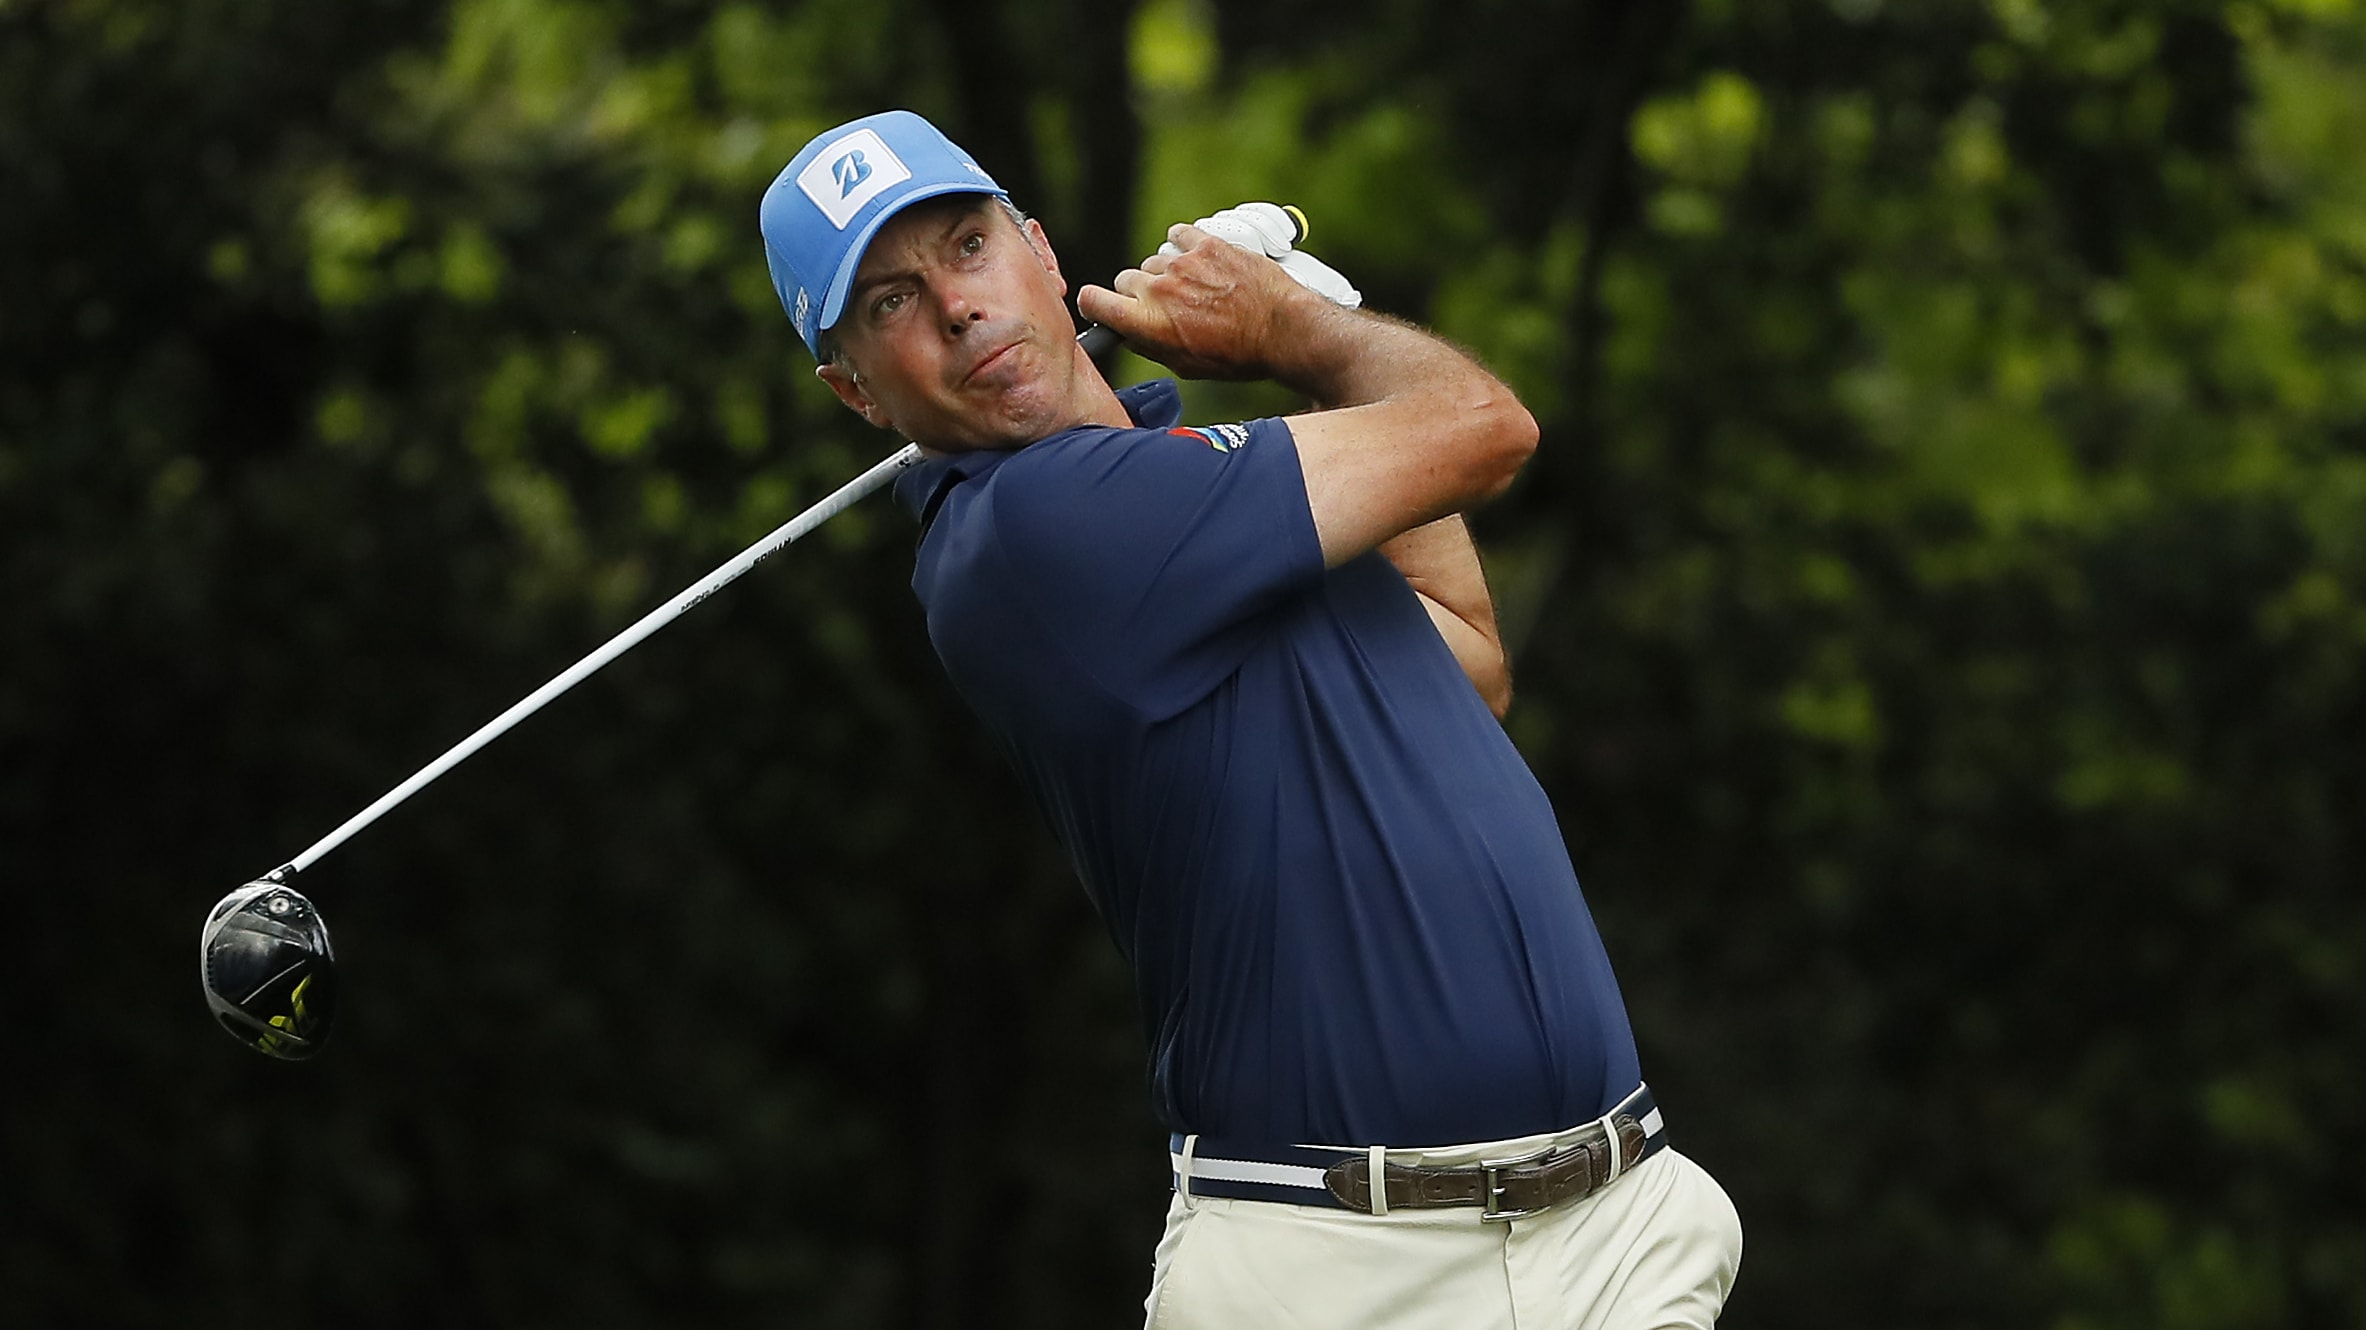 Fantasy Golf Picks for the RBC Heritage